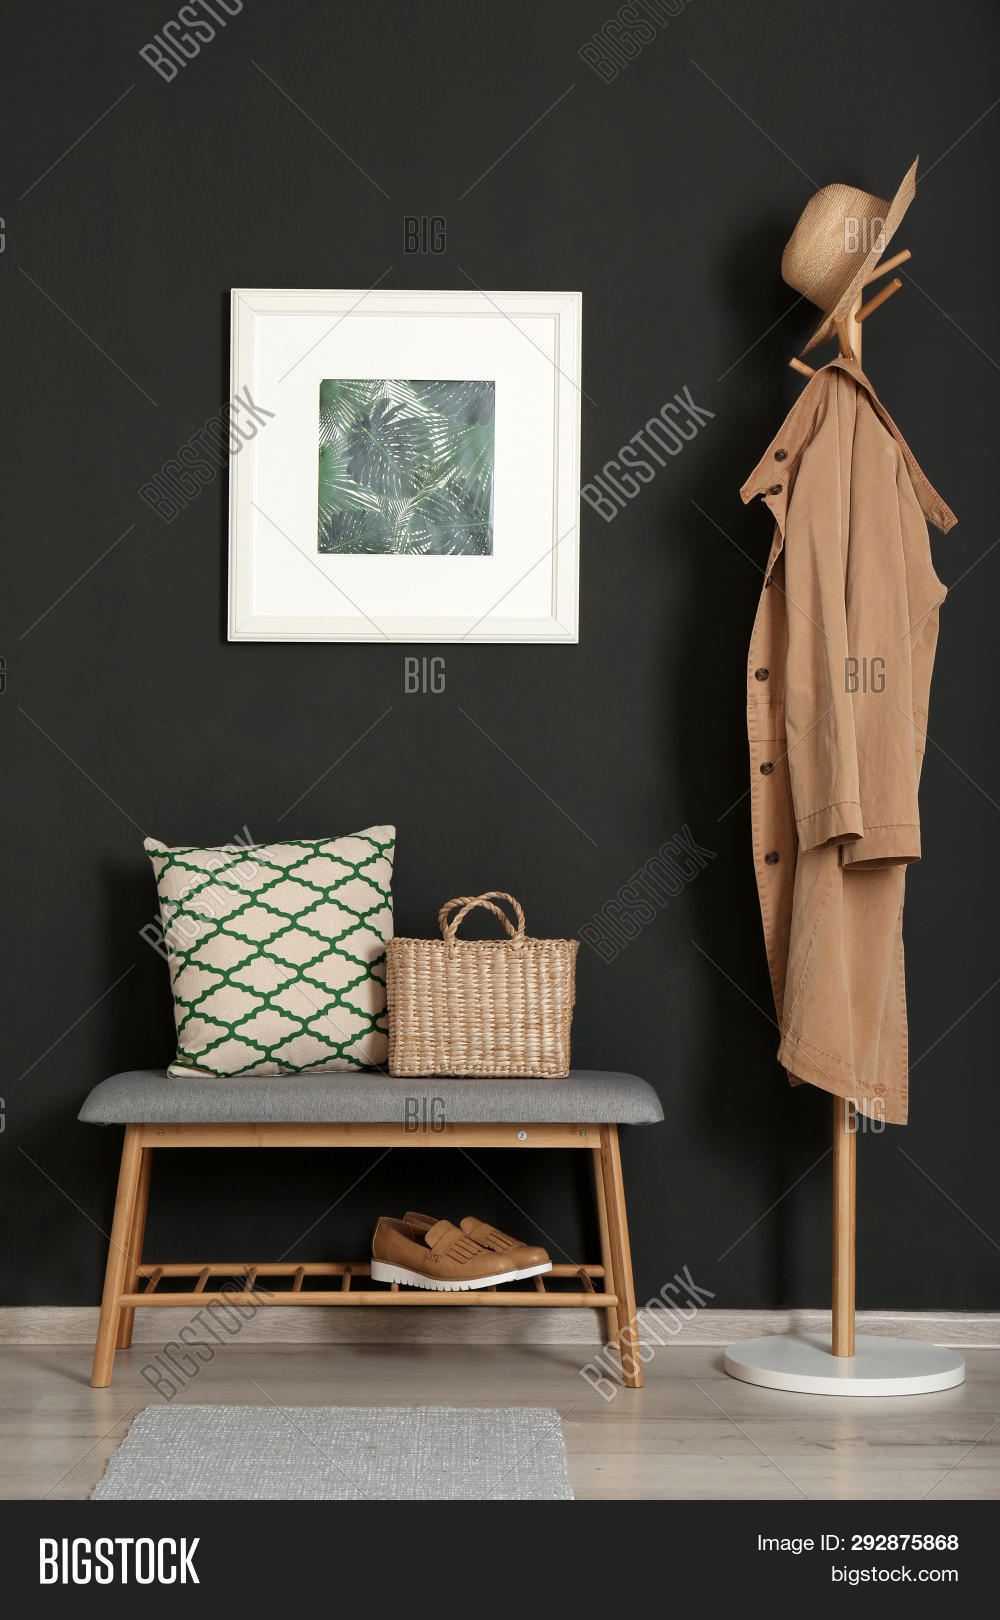 Outstanding Bench Pillow Bag Black Image Photo Free Trial Bigstock Caraccident5 Cool Chair Designs And Ideas Caraccident5Info